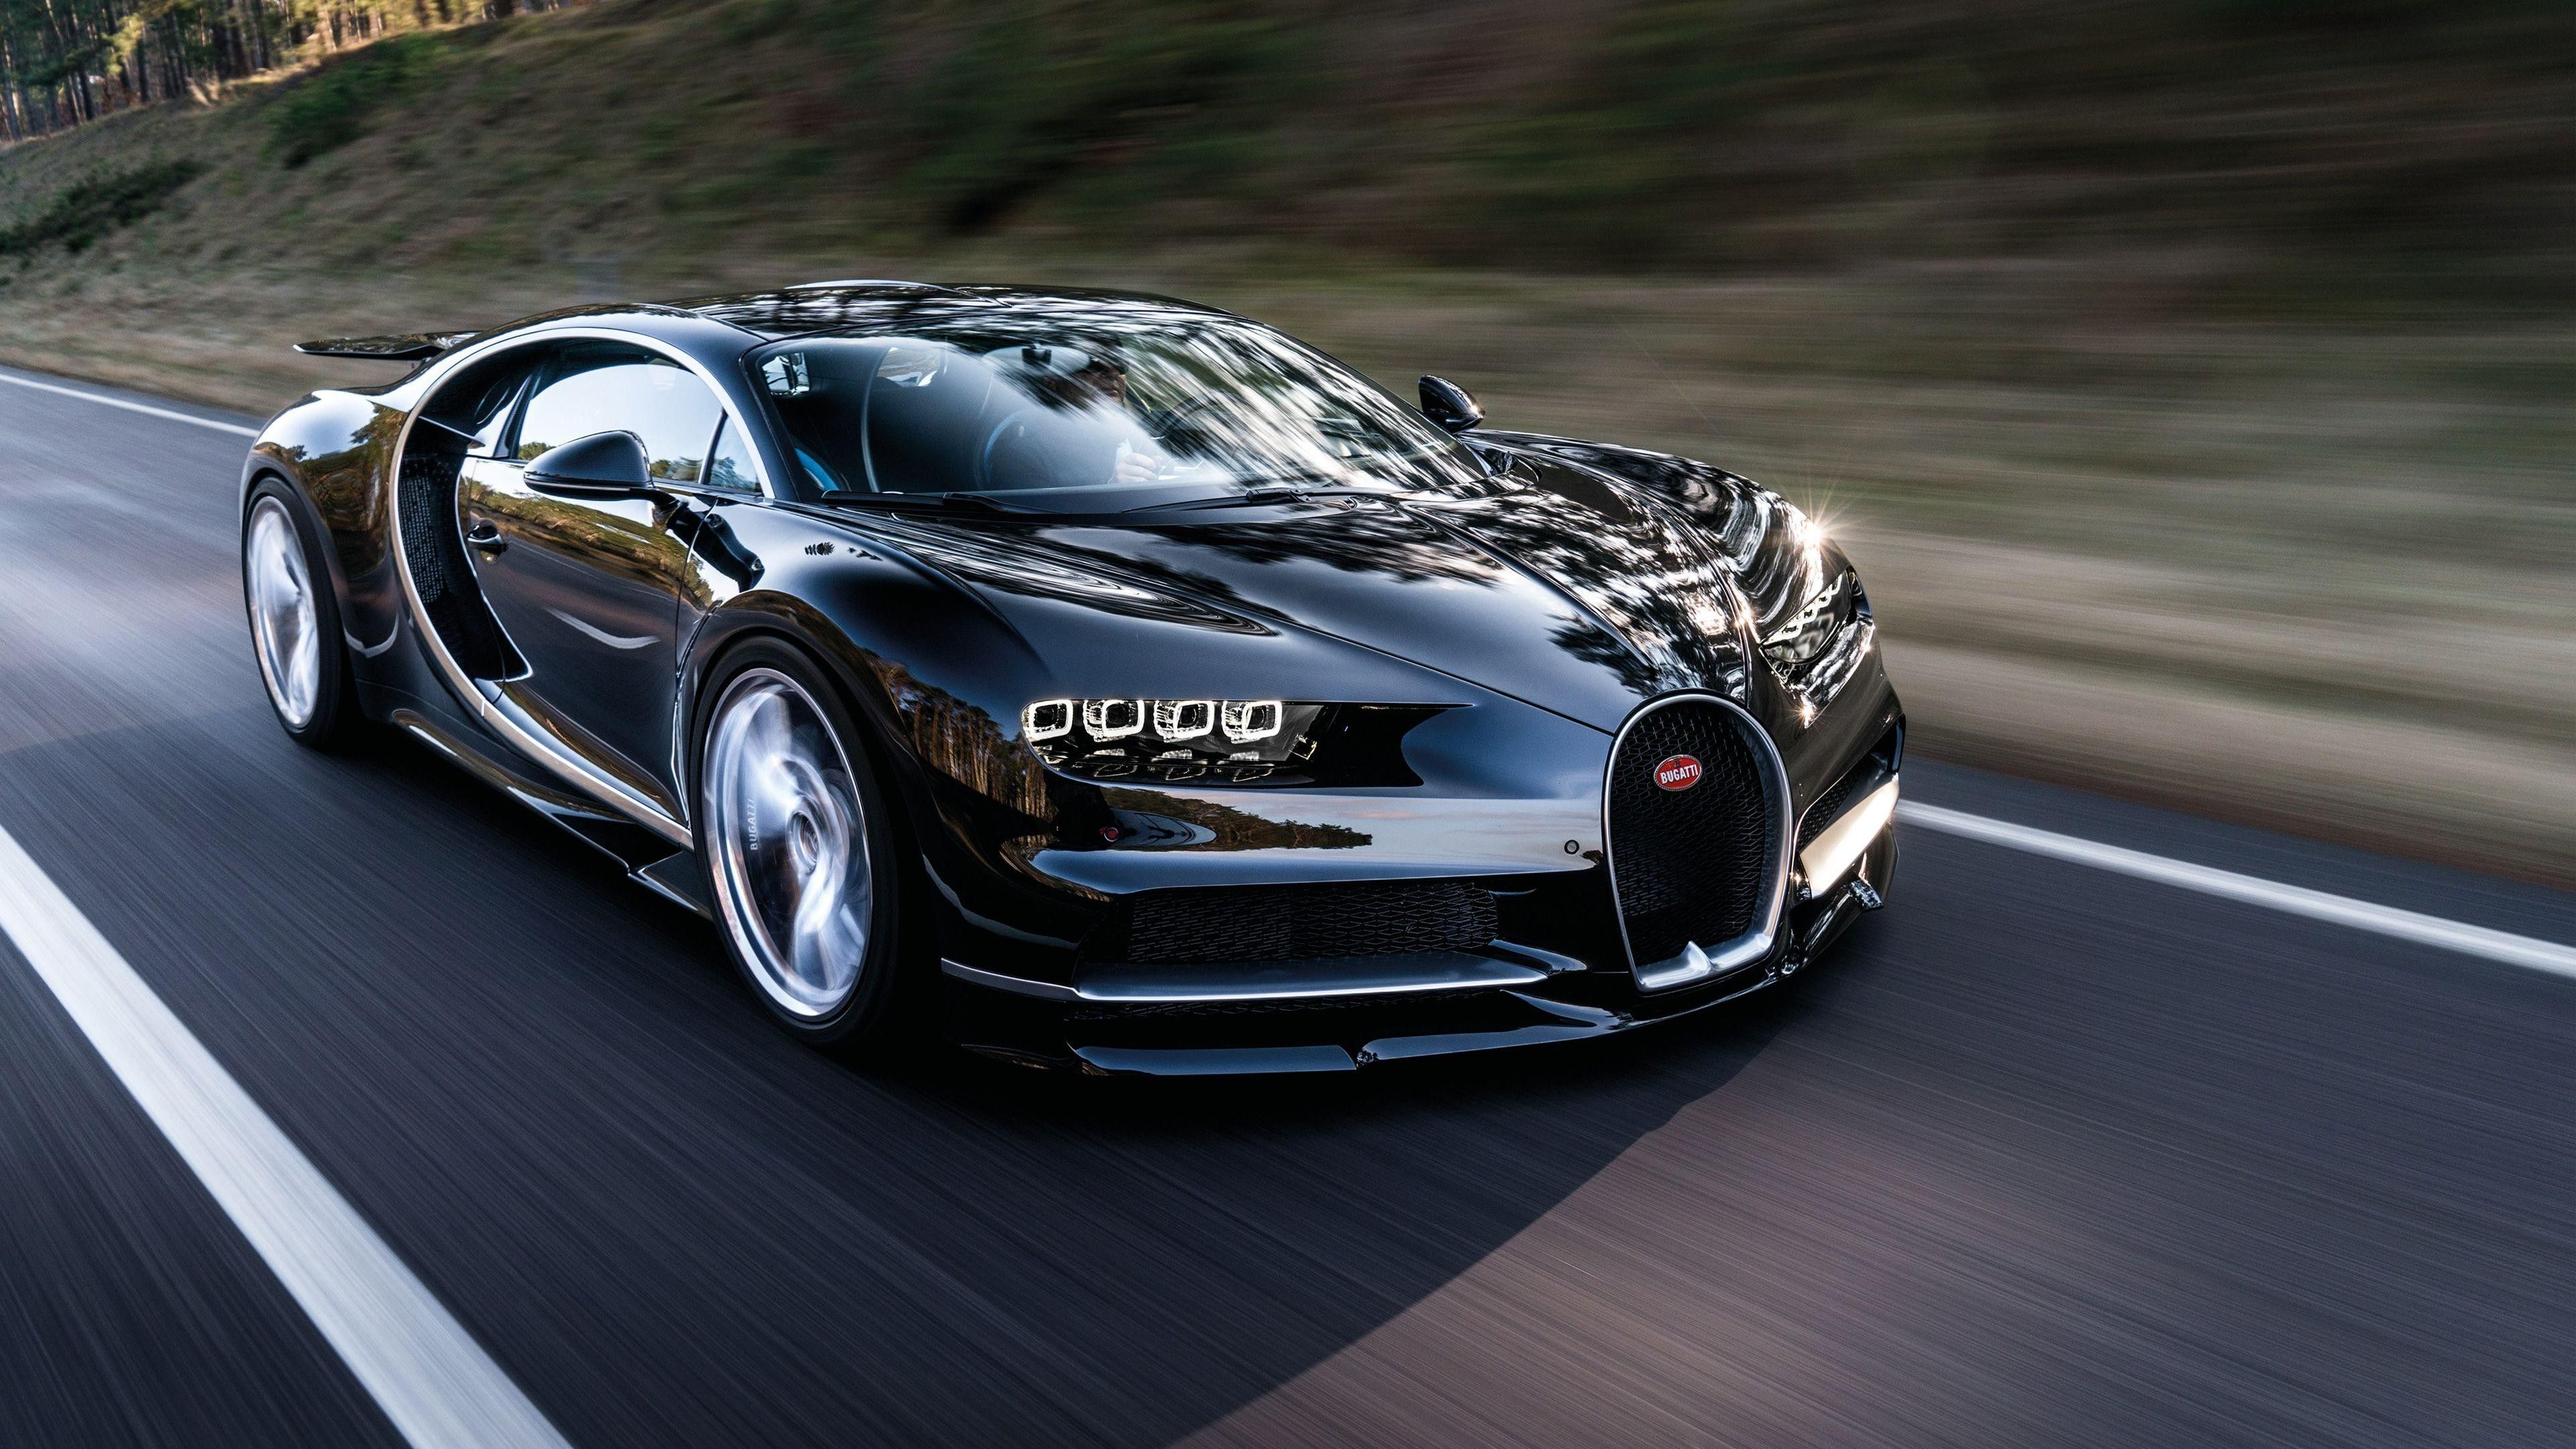 Lovely Bugatti Chiron Hd Wallpapers For Mobile Bugatti Chiron Black Bugatti Wallpapers Car Wallpapers